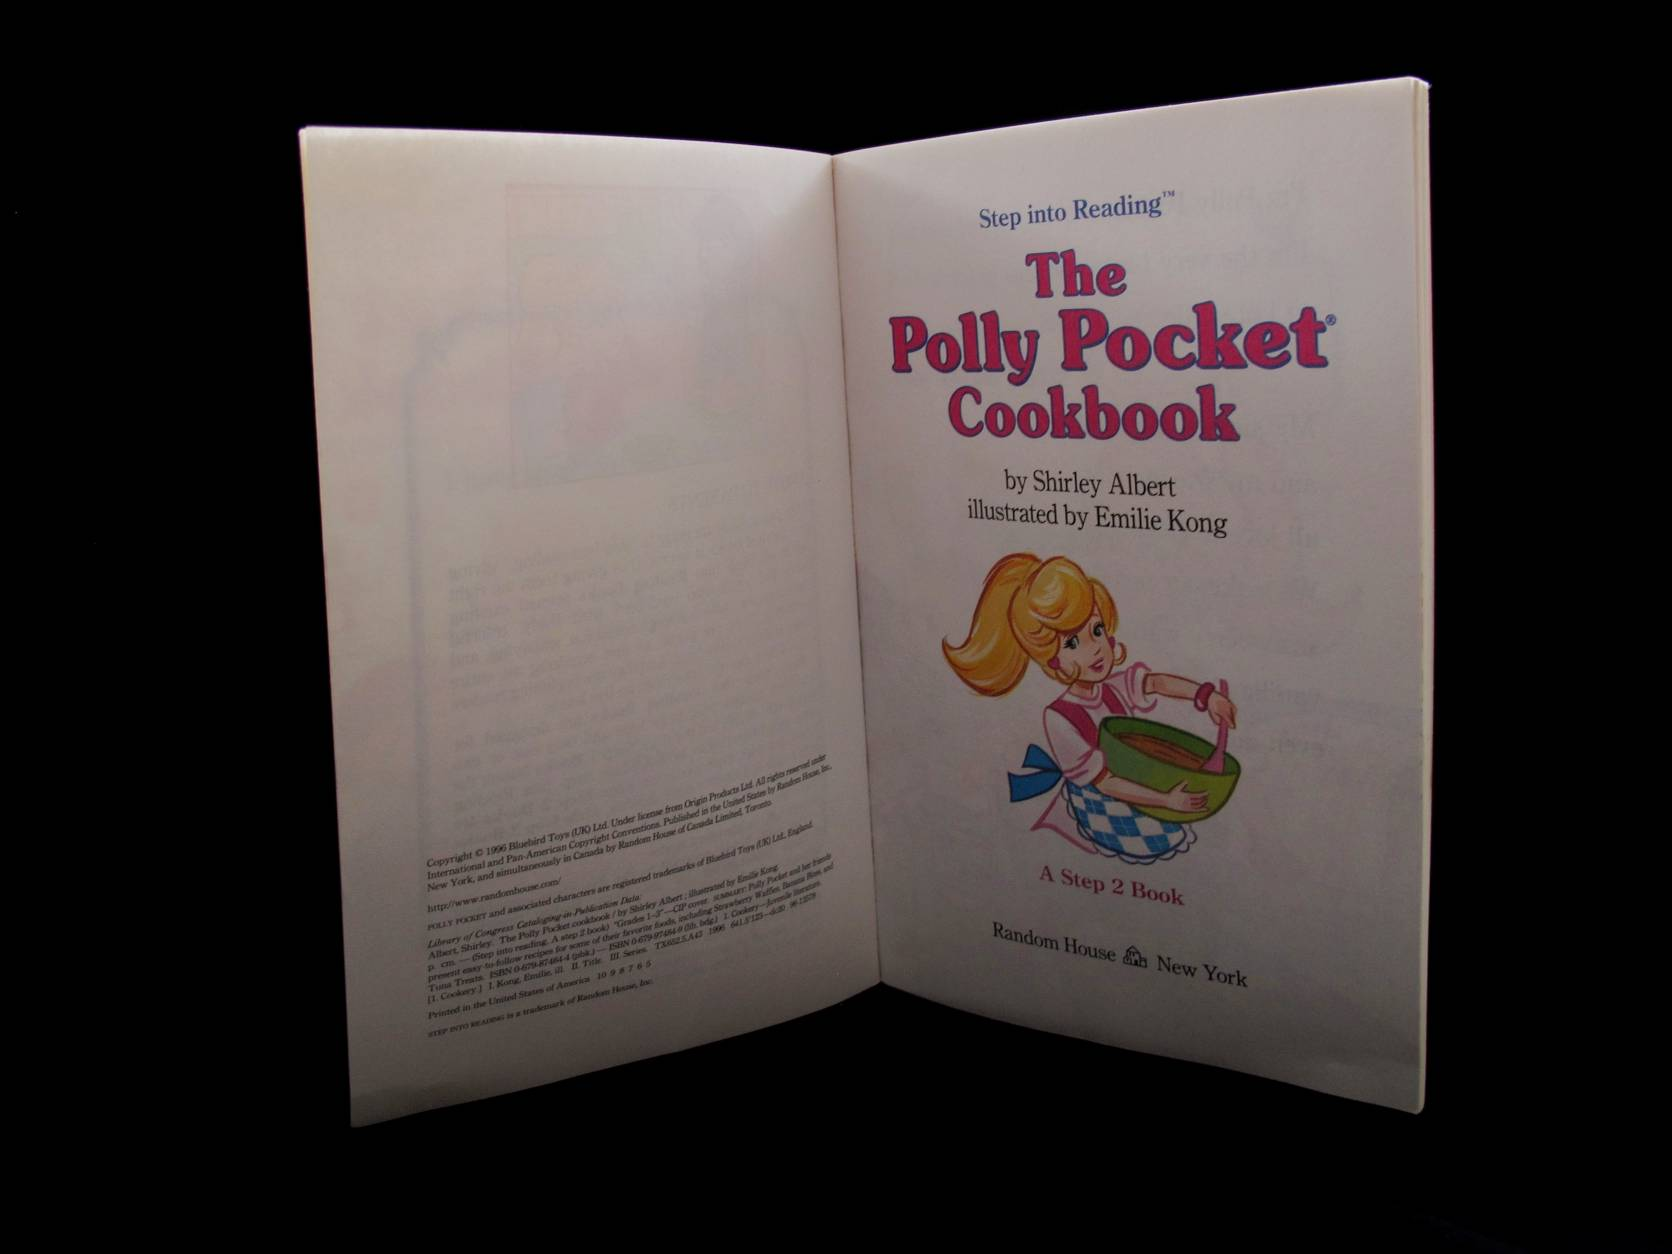 1996 Polly Pocket Cookbook (3)